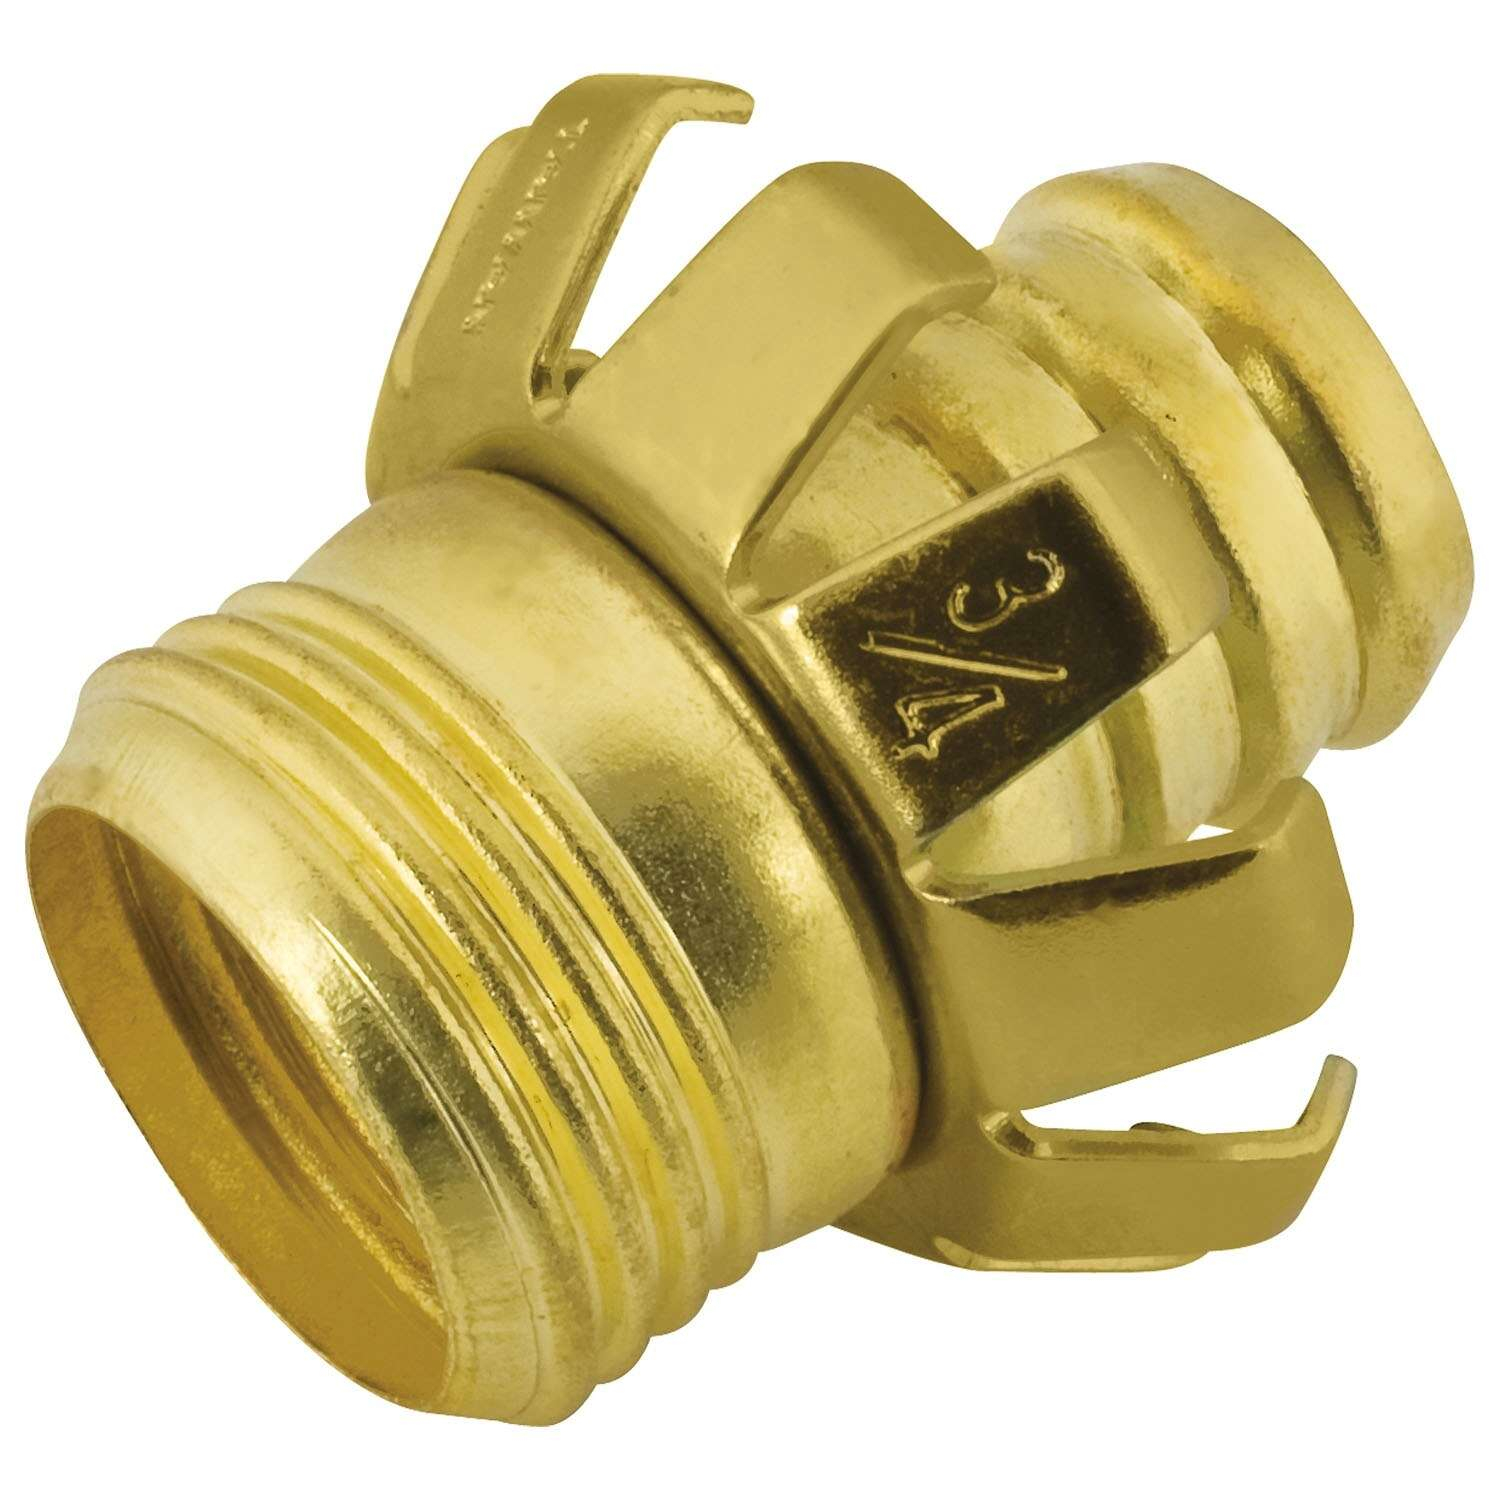 Ace  3/4 in. Metal  Threaded  Male  Clinch Hose Mender Clamp